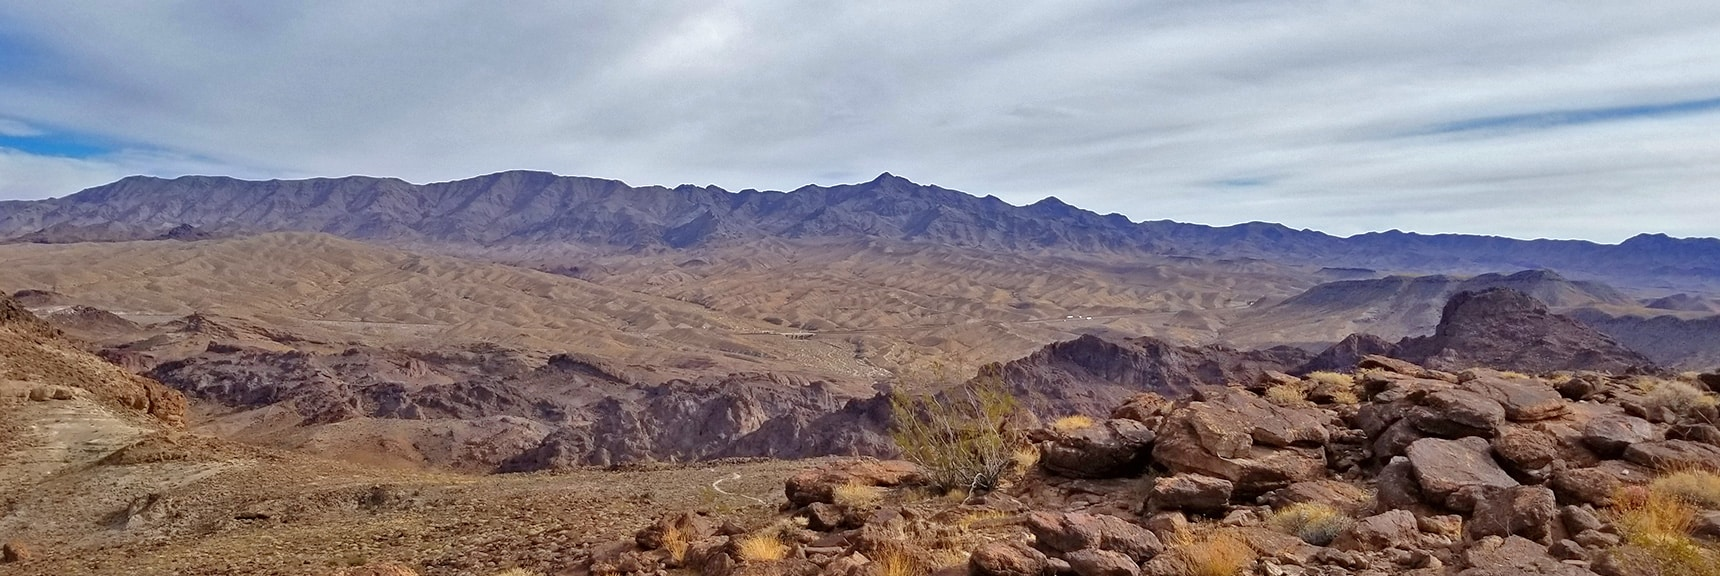 View East Across Canyon to Black Mts. Mt. Wilson High Point. | Arizona Hot Spring | Liberty Bell Arch | Lake Mead National Recreation Area, Arizona